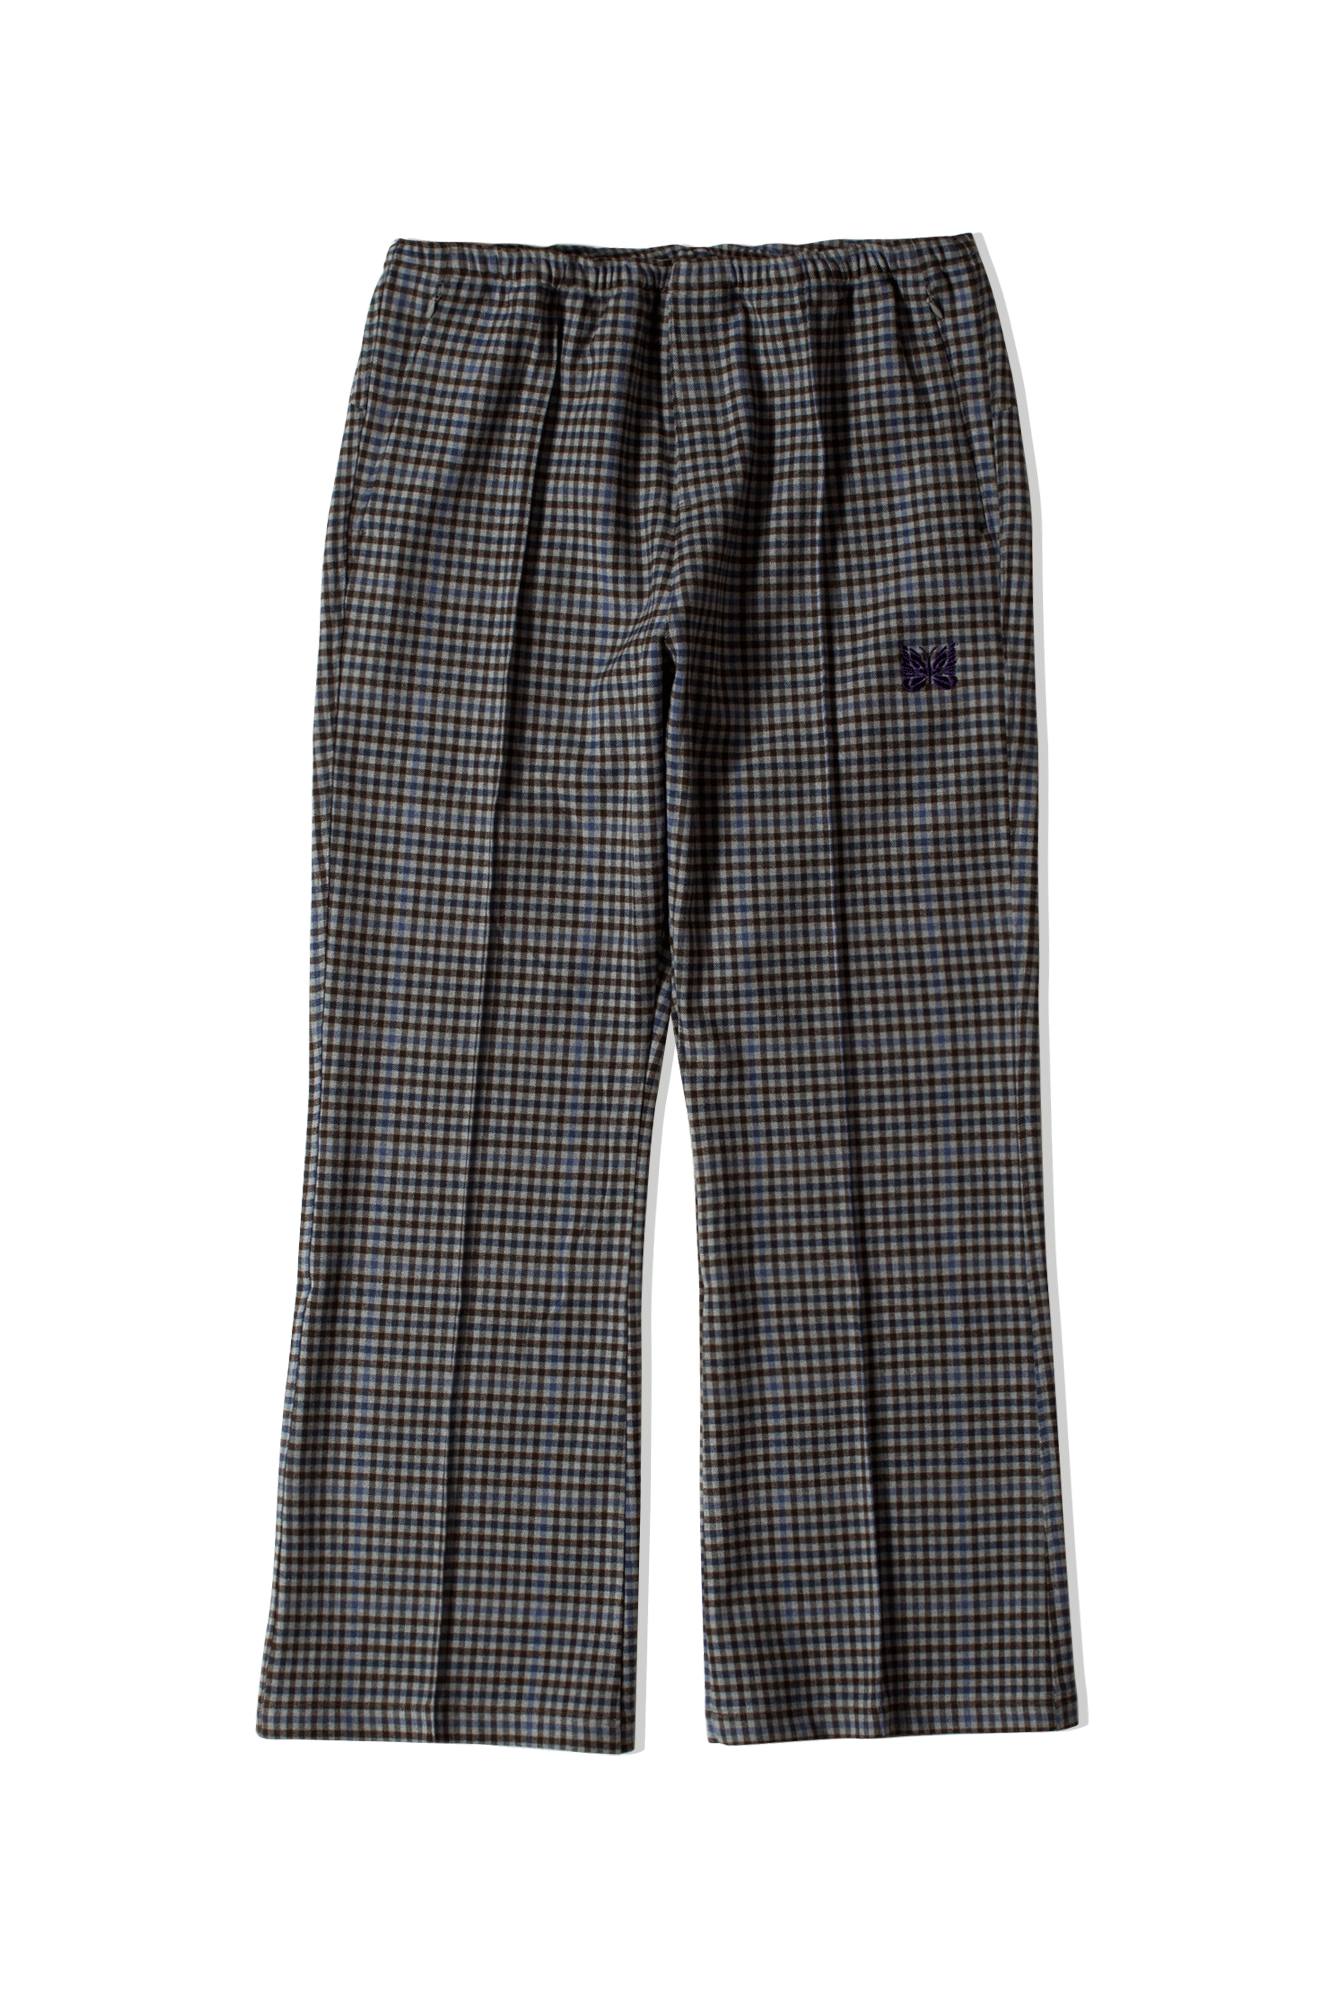 Needles Trousers Gunclub Plaid W.U. Boot-Cut Pant Grey HM162#000#GRY#M - One Block Down